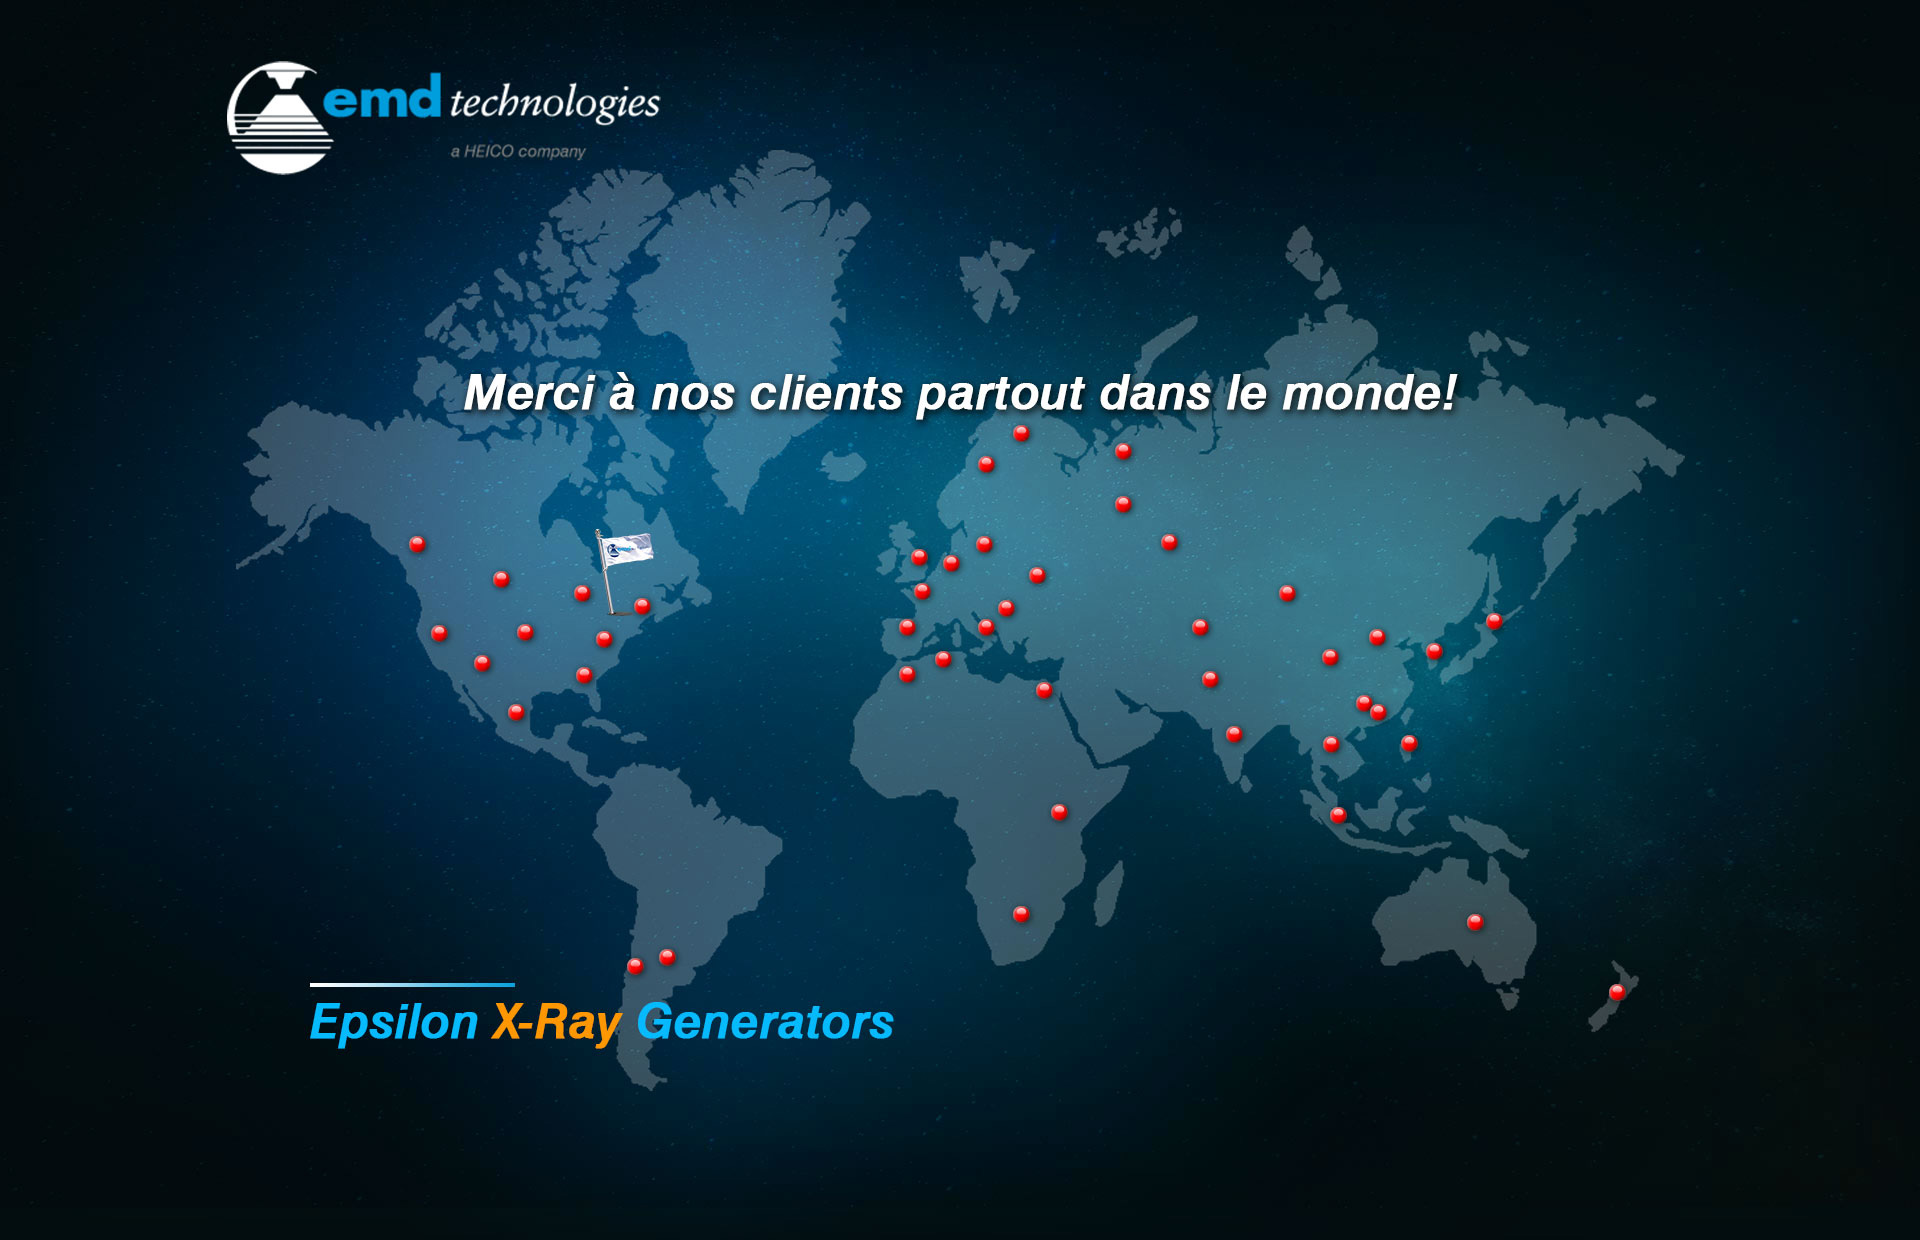 EMD Landing Page - French